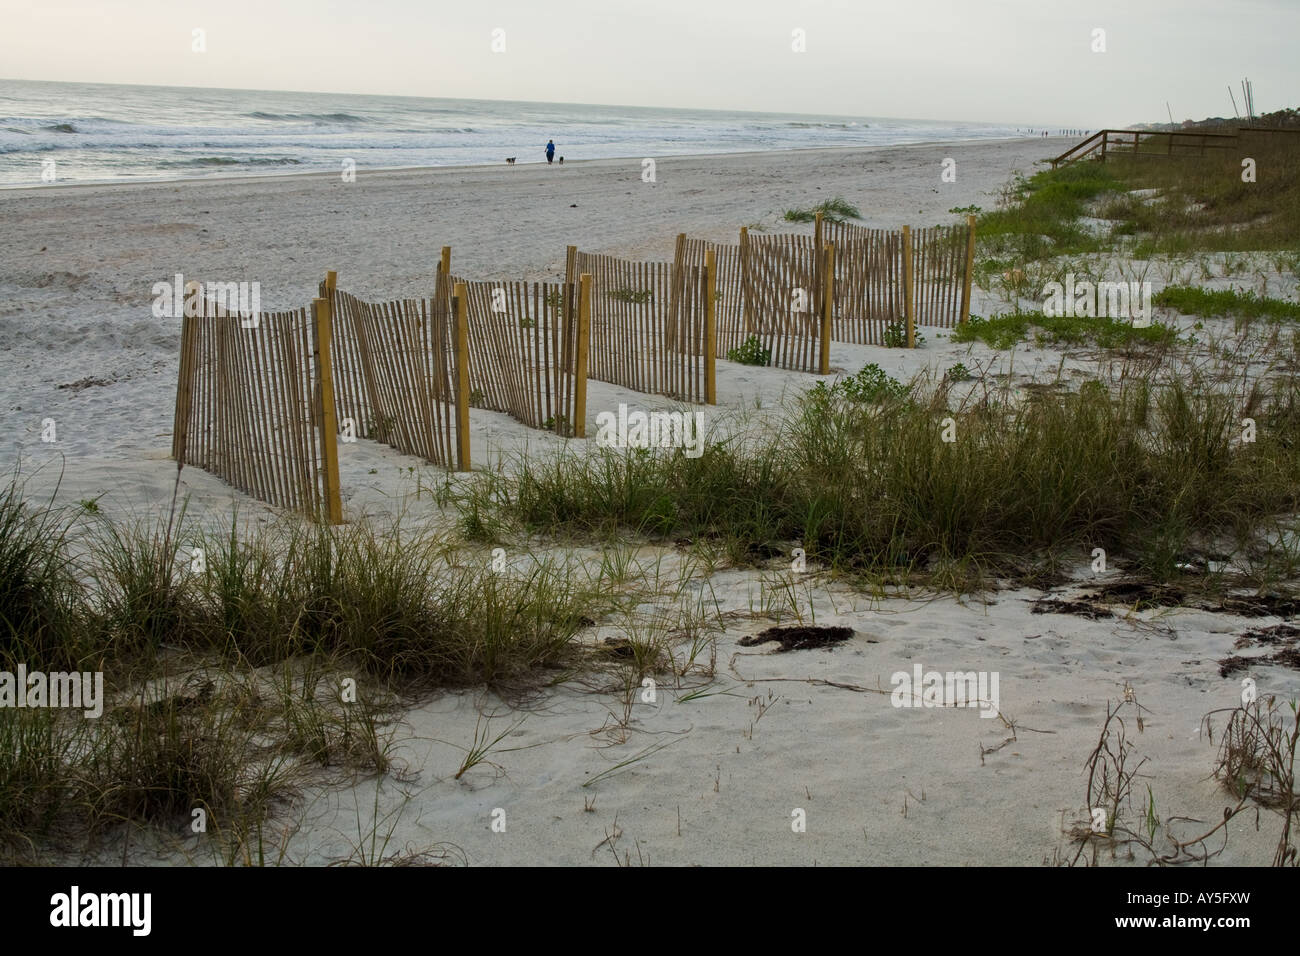 Wooden fence on the beach near Sea Oats by the ocean in Jacksonville Beach, Florida, USA Stock Photo